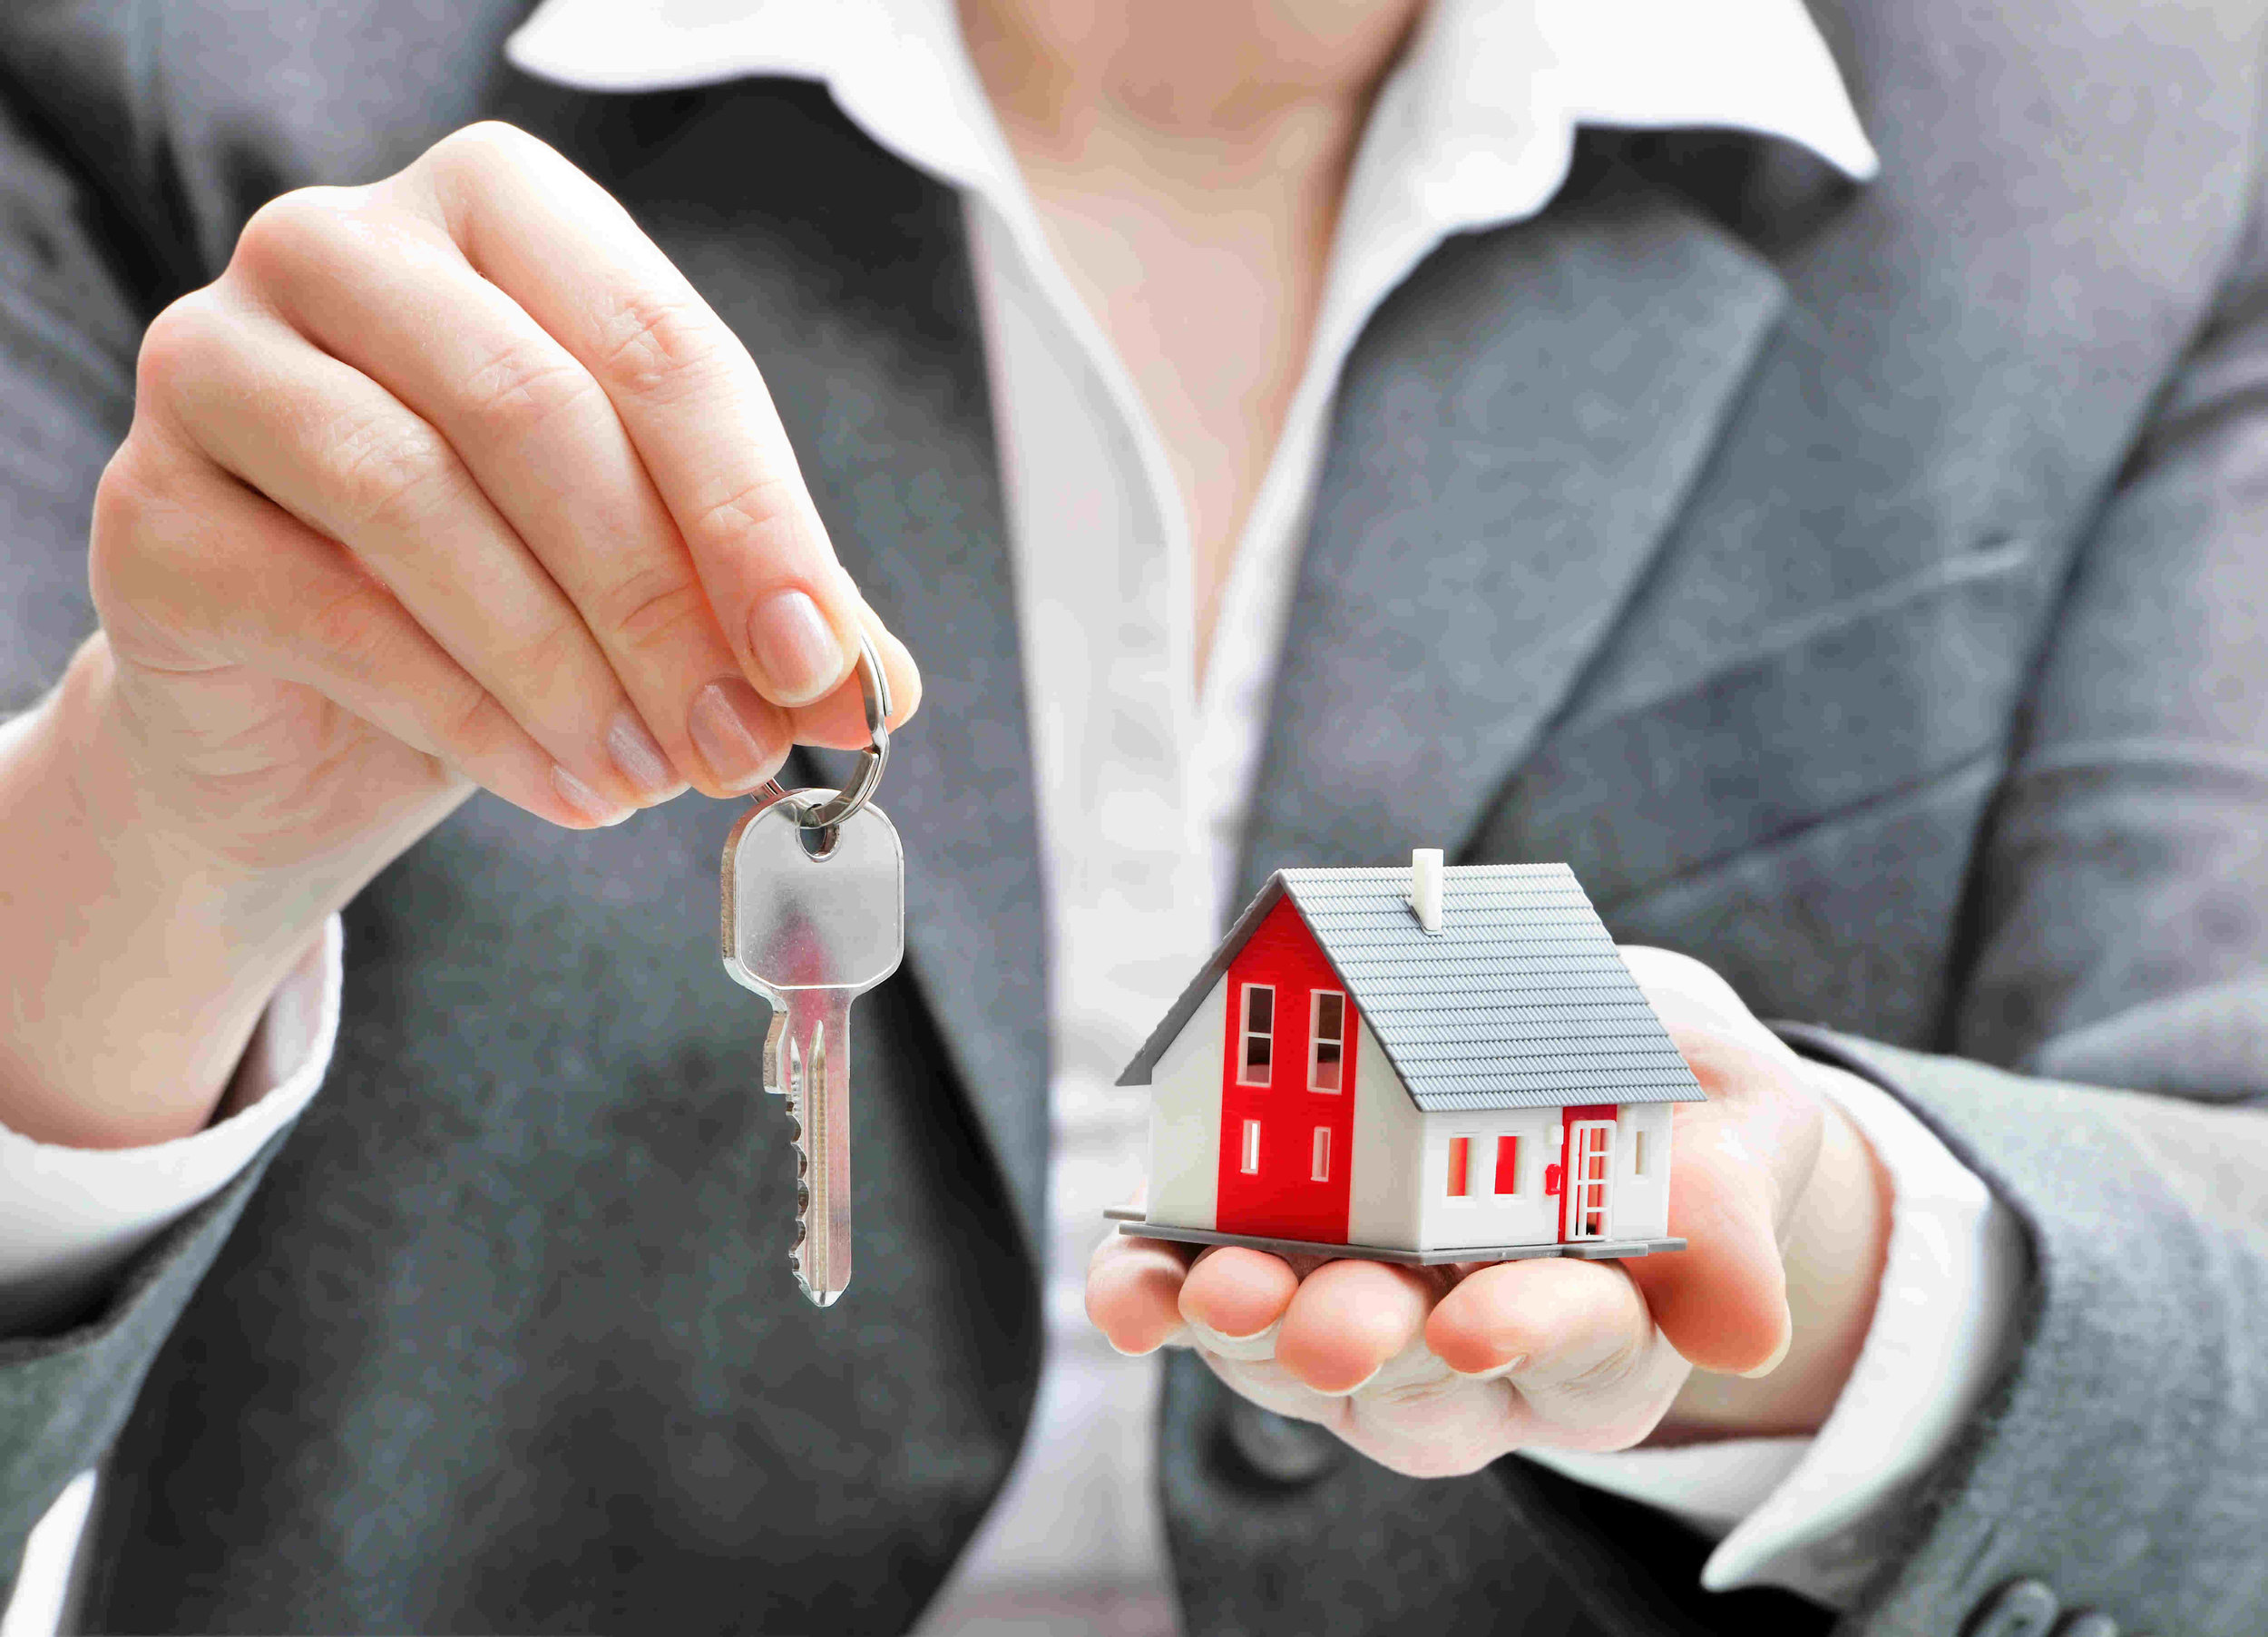 man holding toy house in one hand and handing over keys in other hand